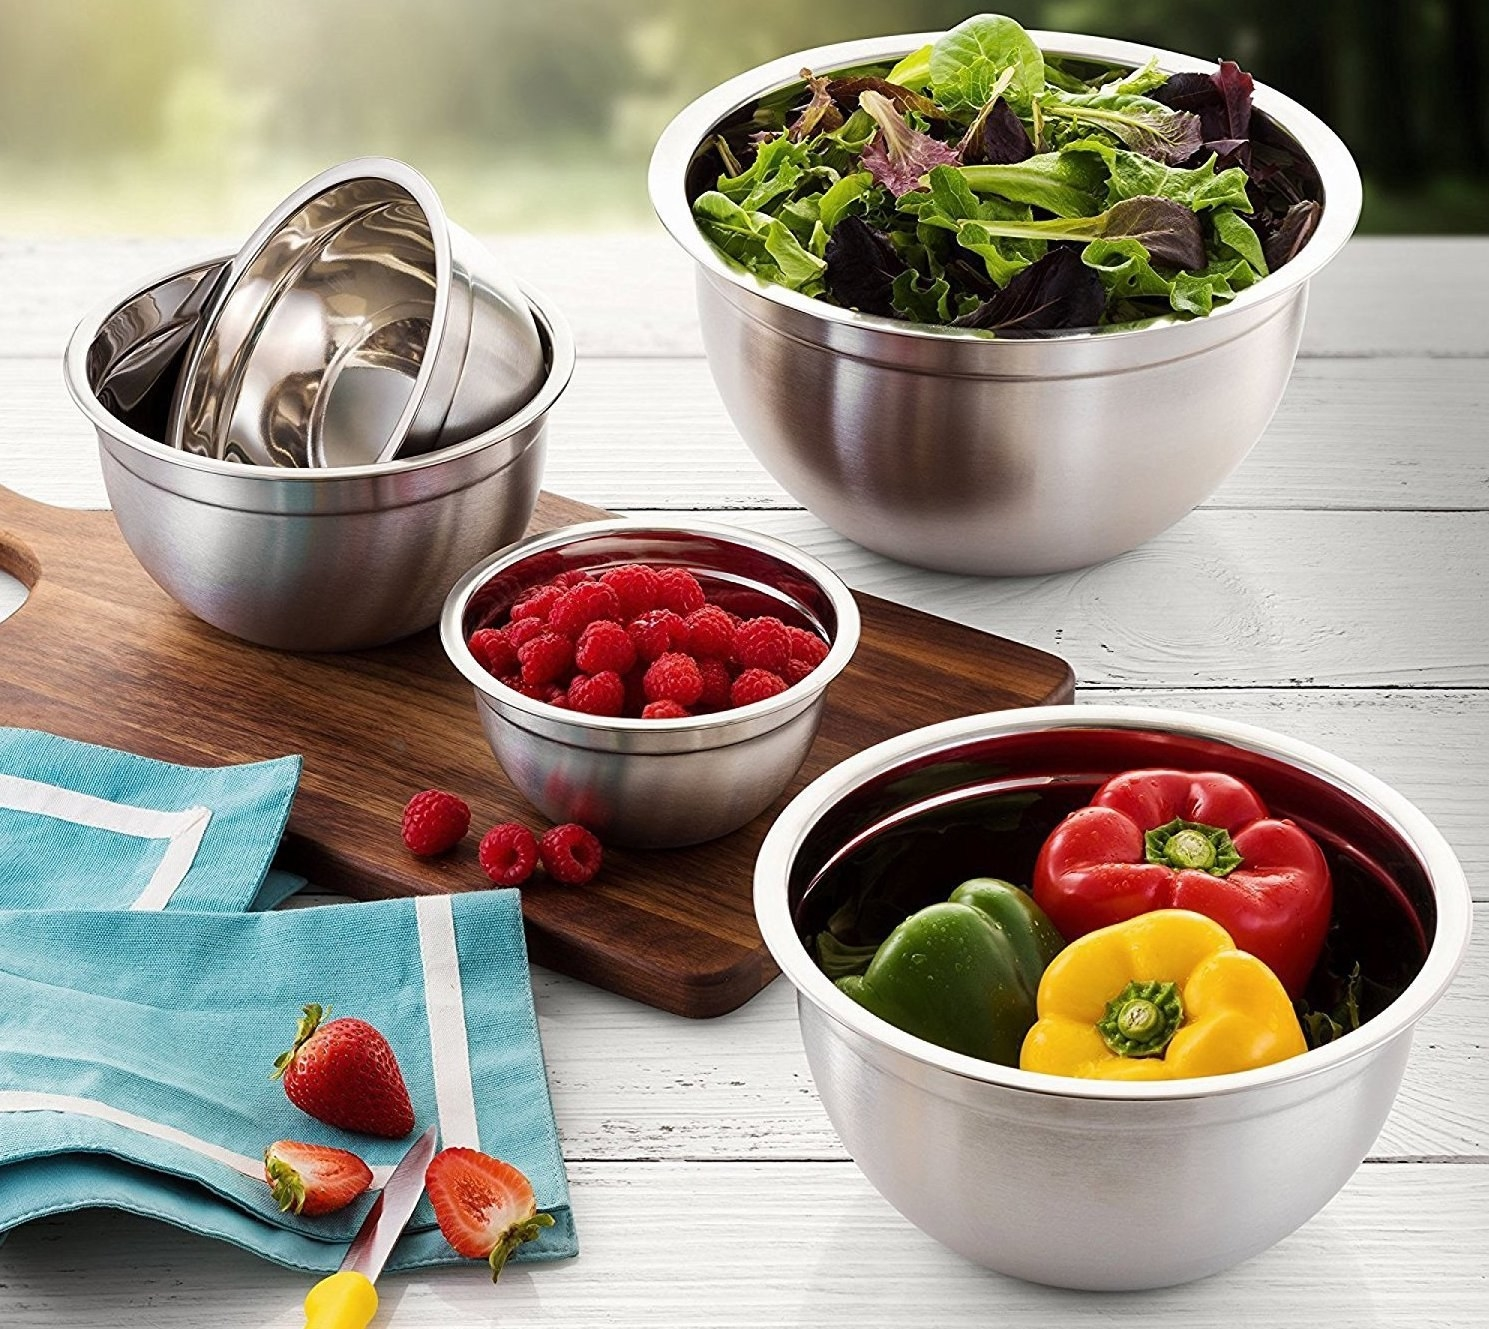 A set of stainless steel bowls filled with fresh fruits and veggies